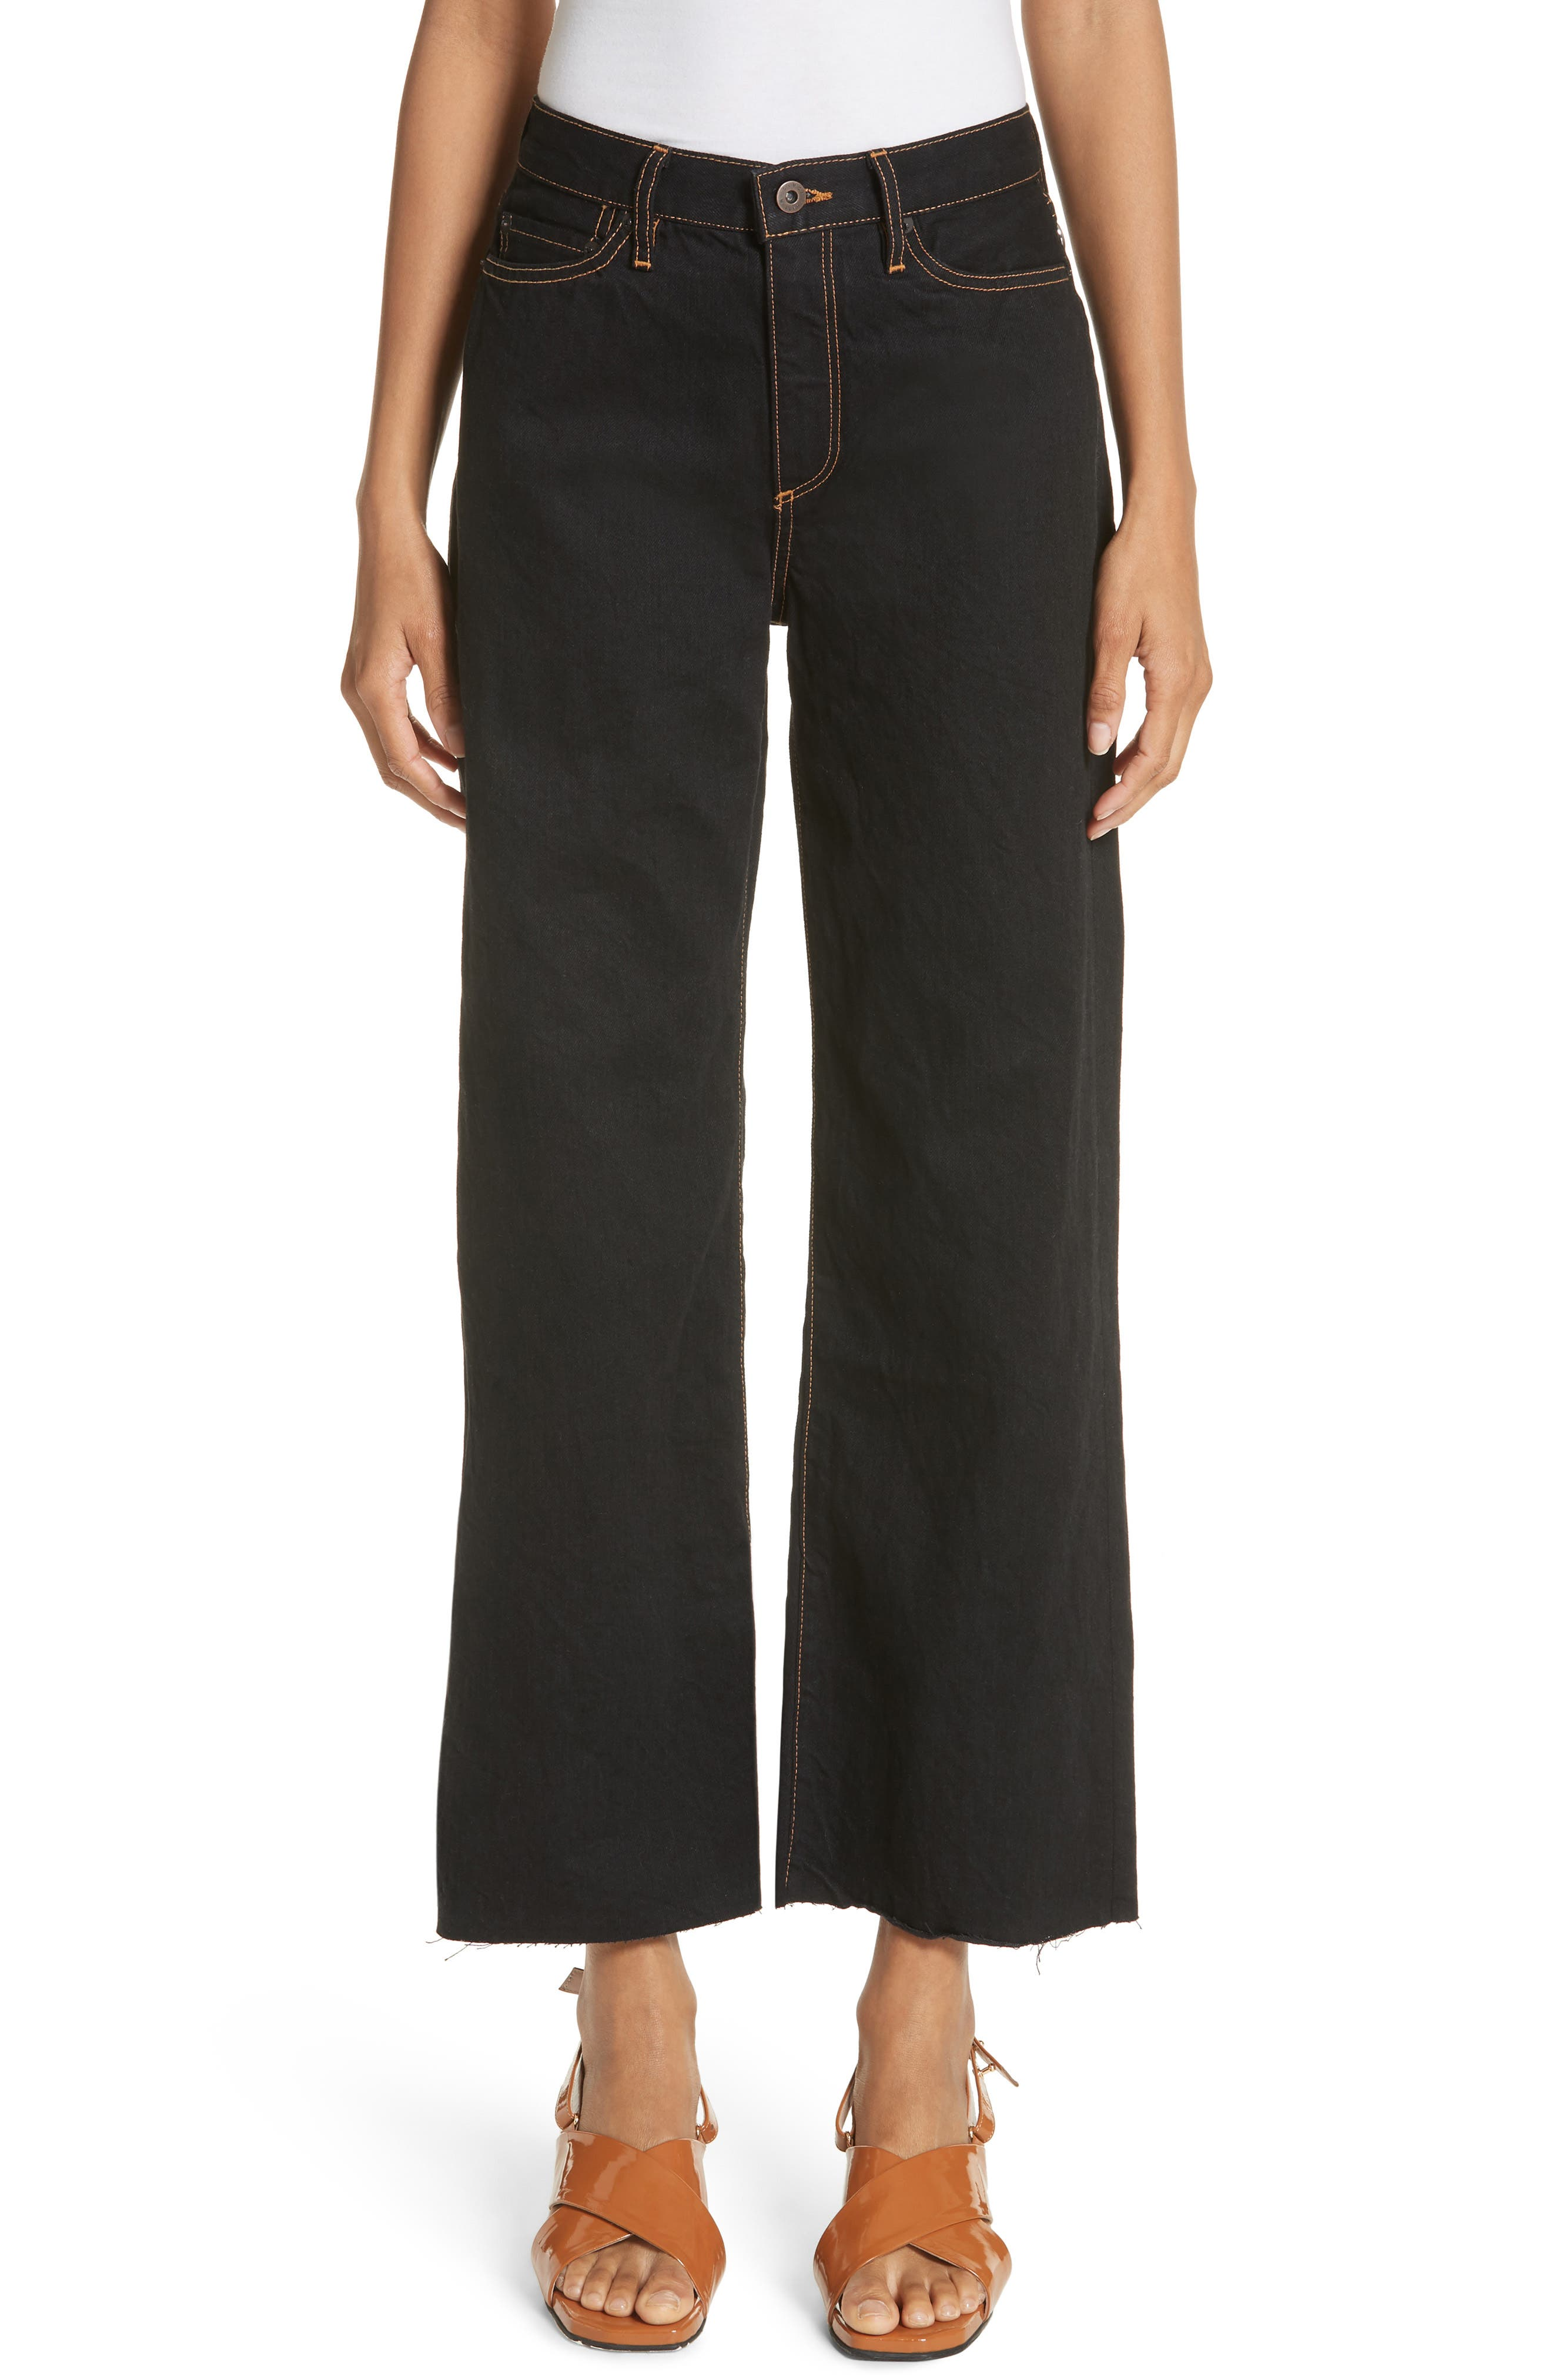 Dever Contrast Stitch Wide Leg Jeans,                         Main,                         color, Black